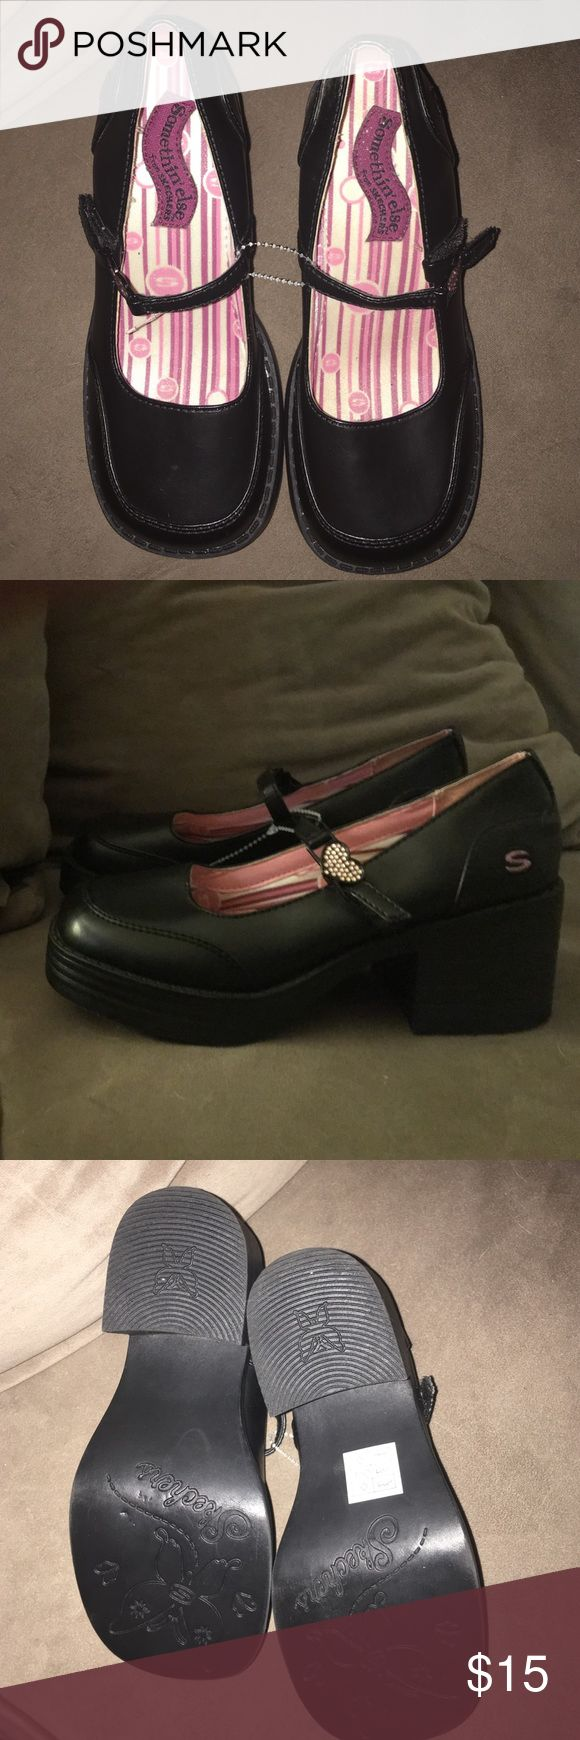 New Girls Skechers Black Heeled Loafers. Brand new without tags girls size 1.5 black loafers. Slight chunky heel and glitter heart Velcro closures make these shoes trendy and fun. My daughter loved them but needed a larger size (I didn't realize her feet had grown!). My loss is your gain! Skechers Shoes Dress Shoes